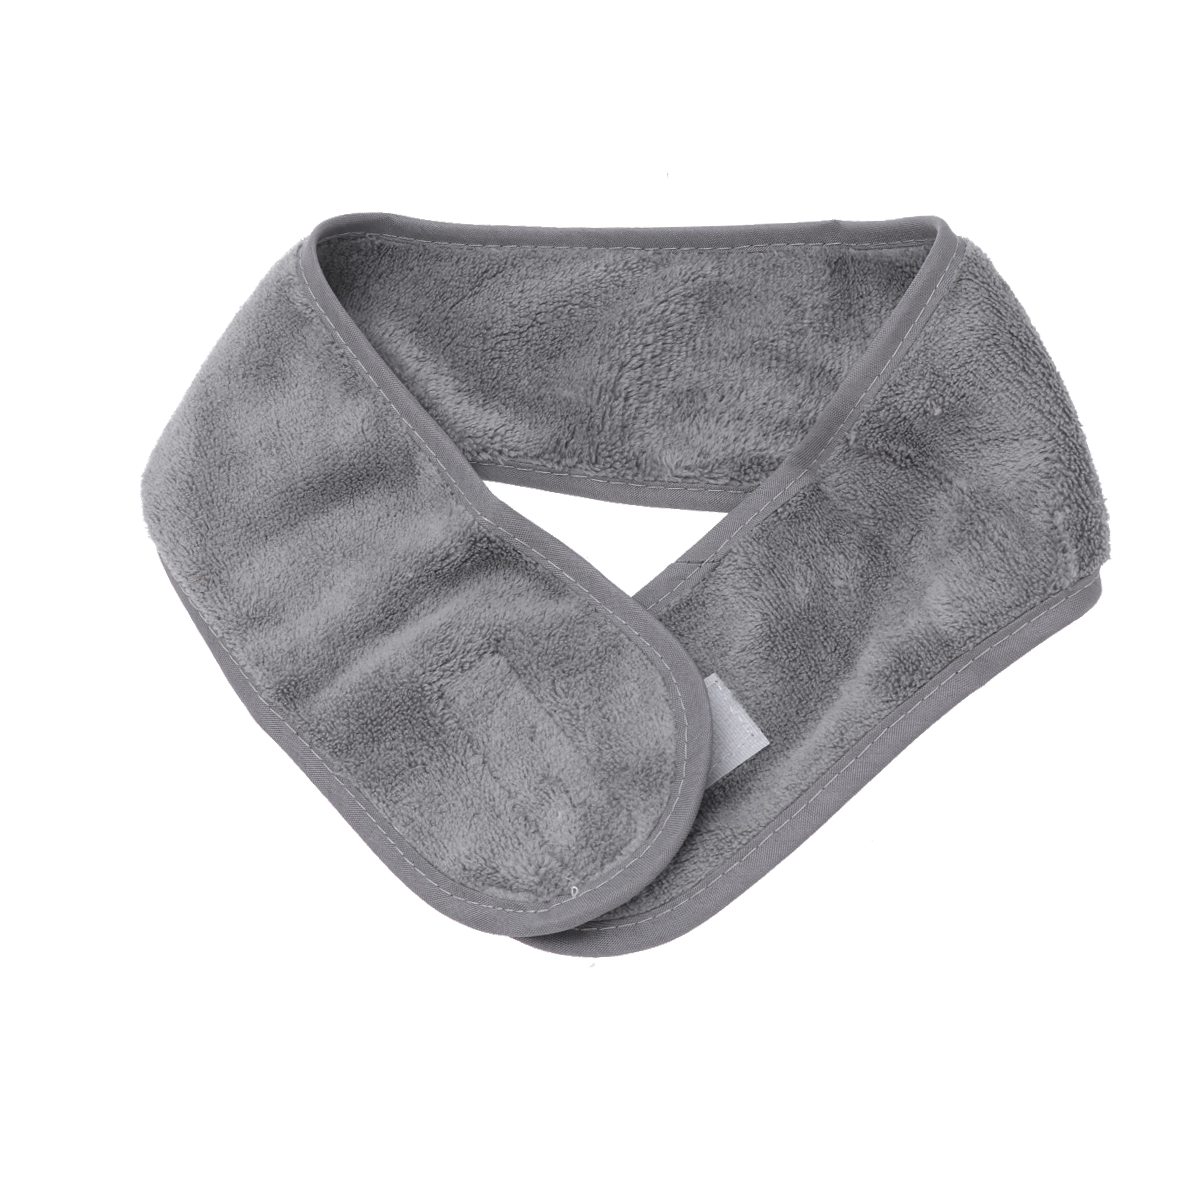 Adjustable Makeup Toweling Hair Wrap Head Band Soft Adjustable Salon SPA Facial Headband Hairband